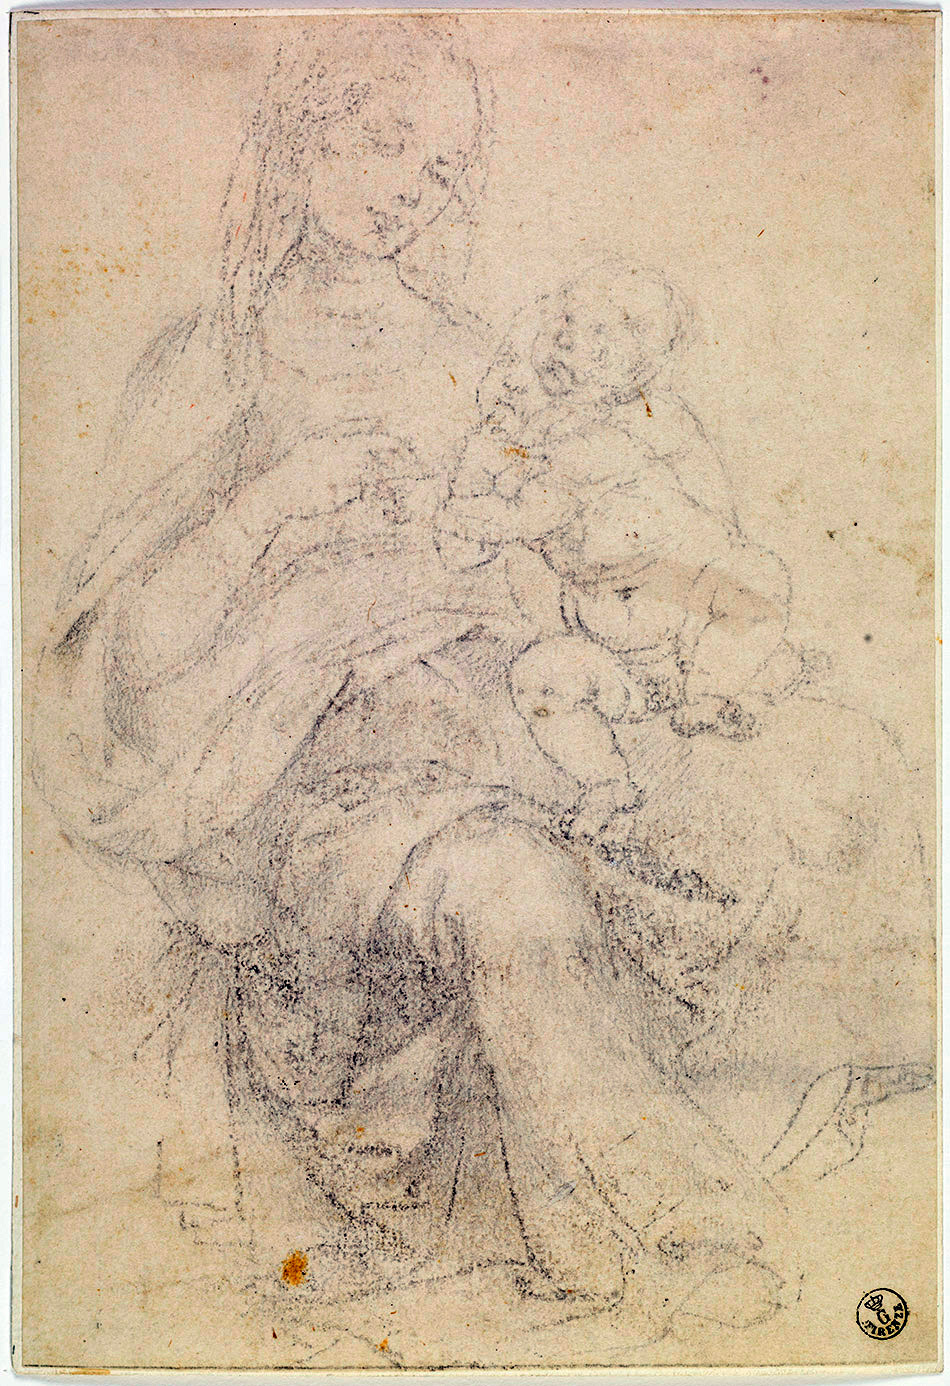 Andrea-del-Verrocchio-or-possibly-Leonard-da-Vinci_Madonna-with-Child-on-her-lap_950-W